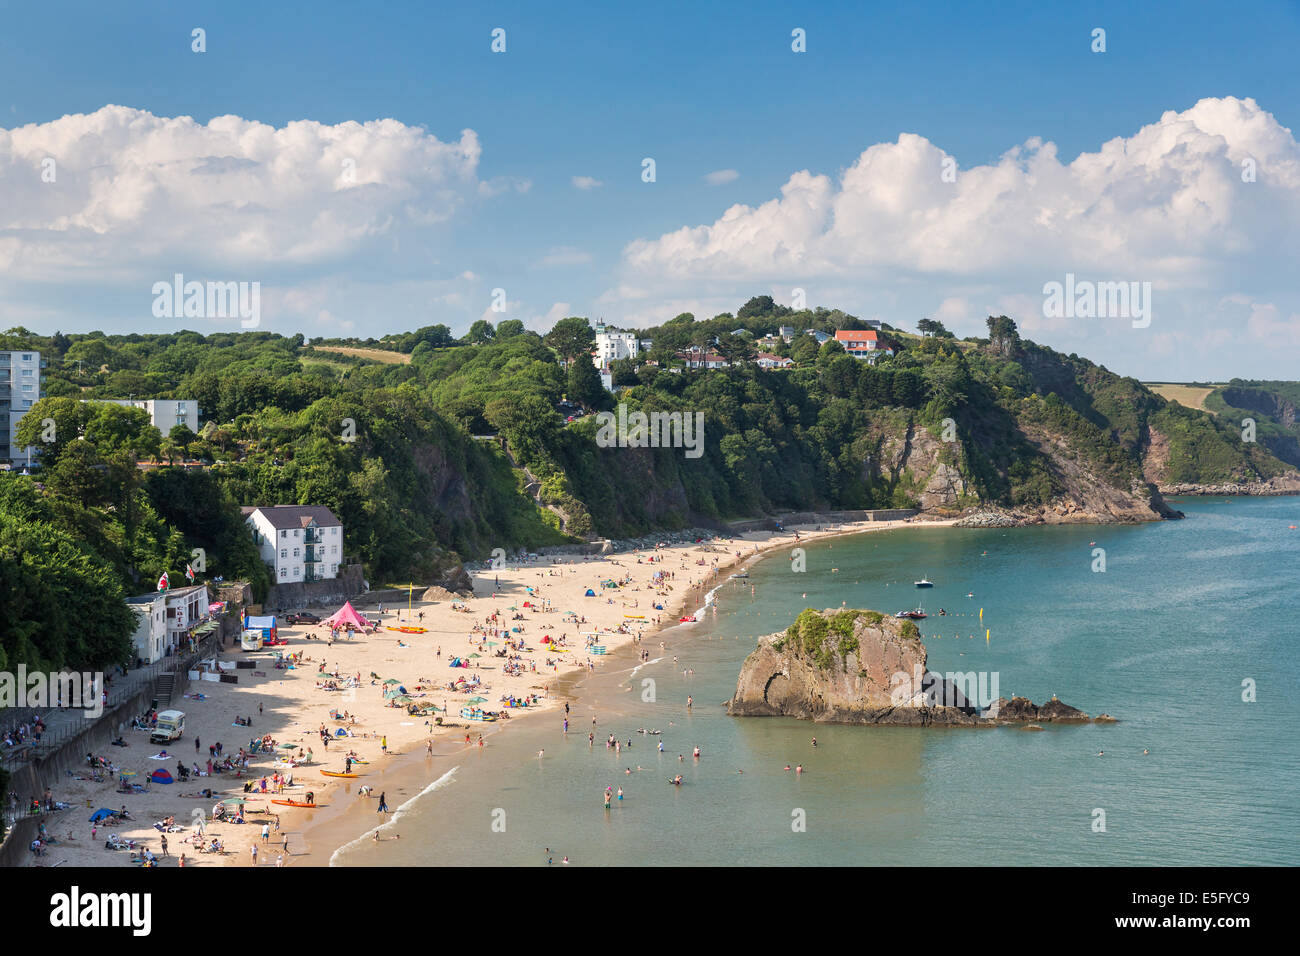 North beach in Tenby packed full of holidaymakers - pictured with Goscar Rock looking towards the north. Tourism - Stock Image